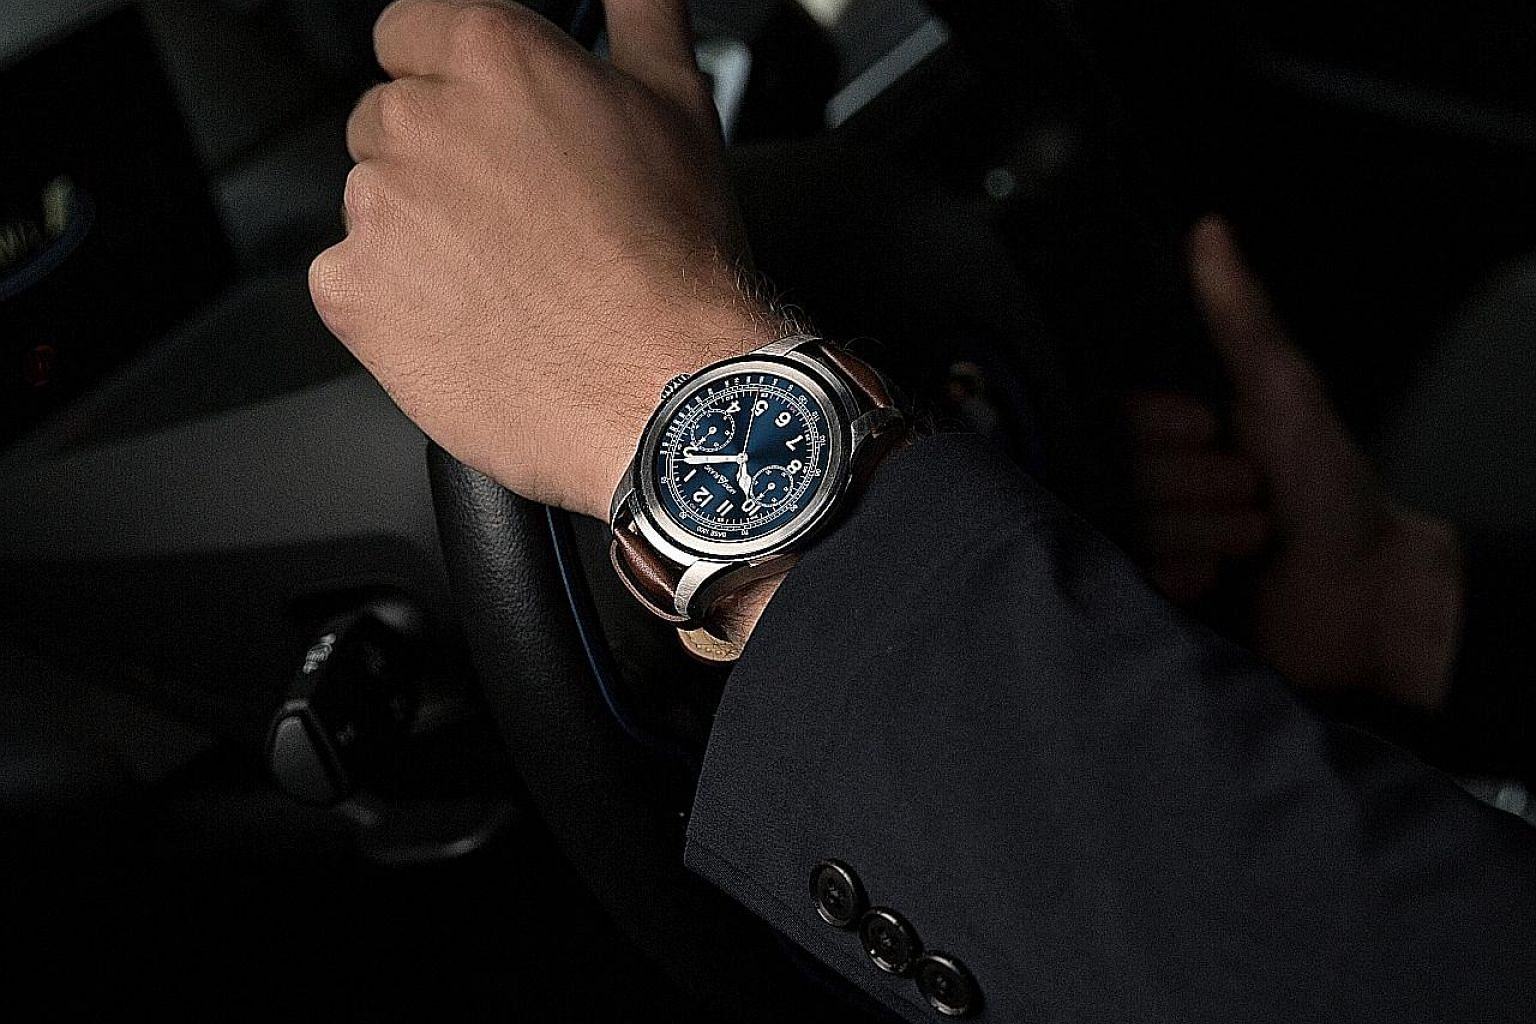 The launch of new smartwatches from fashion and luxury brands such as Montblanc (above), Louis Vuitton and Tag Heuer augurs well for the industry.